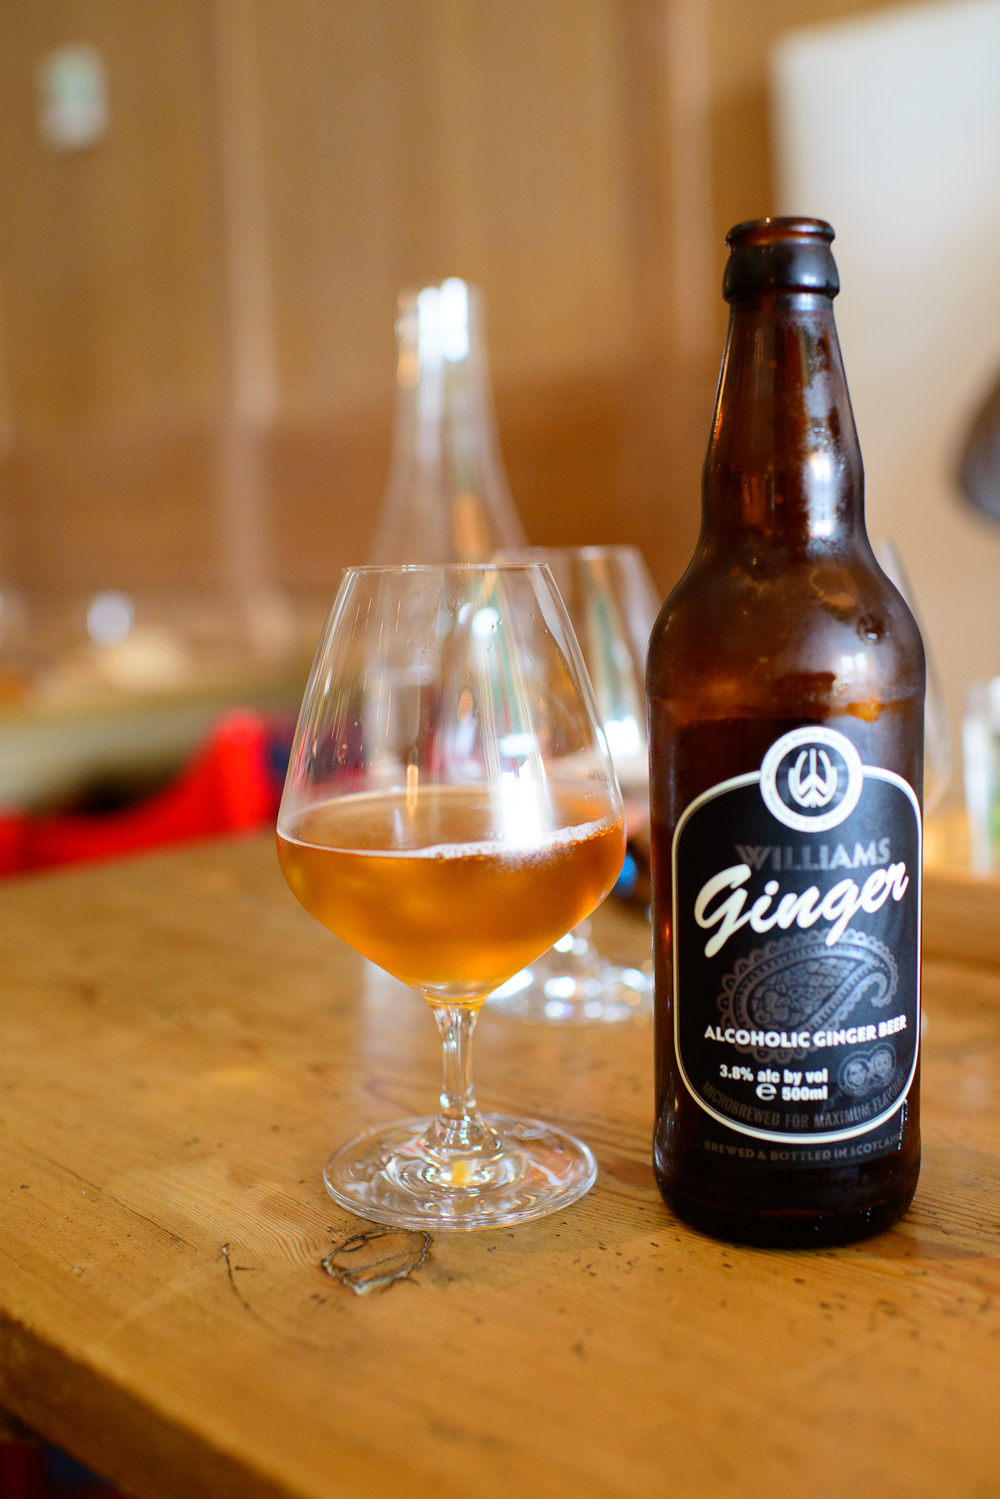 Williams Ginger Beer